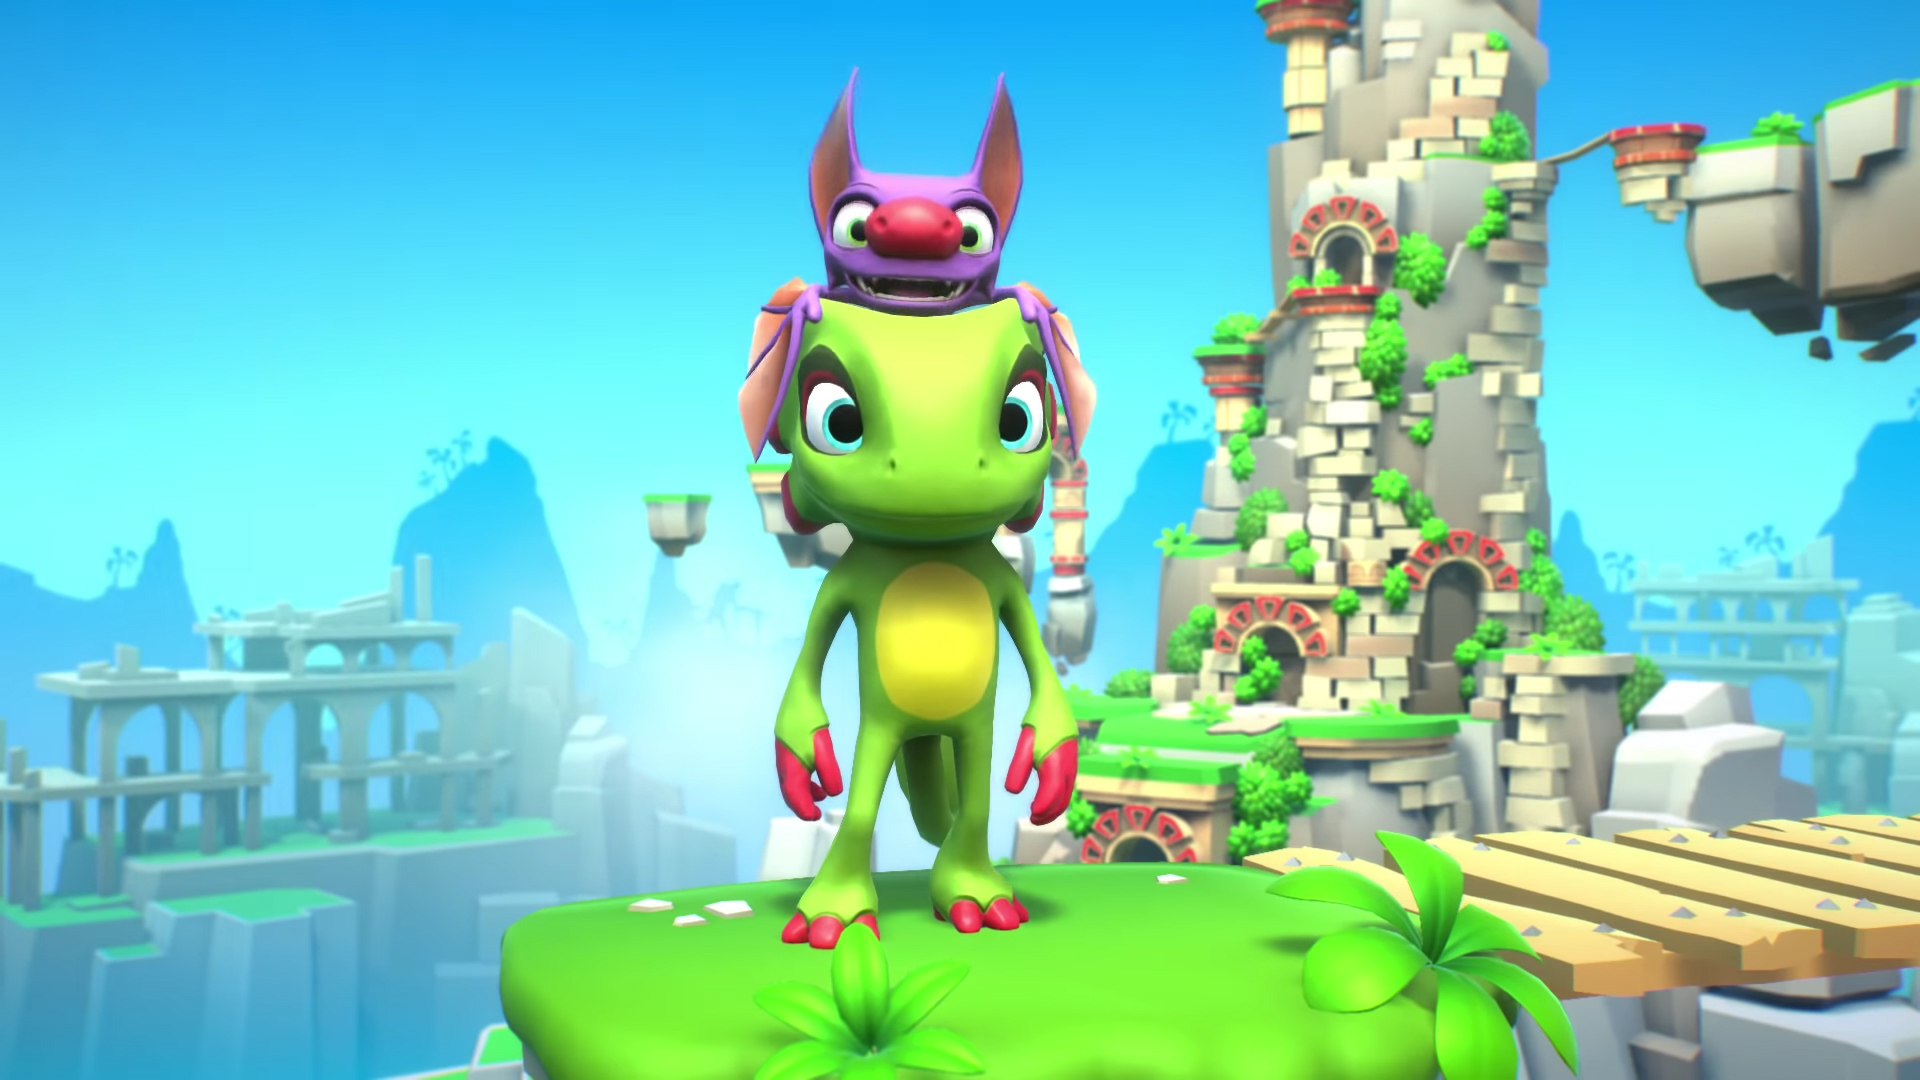 Yooka-Laylee is the latest guest fighter in Brawlout